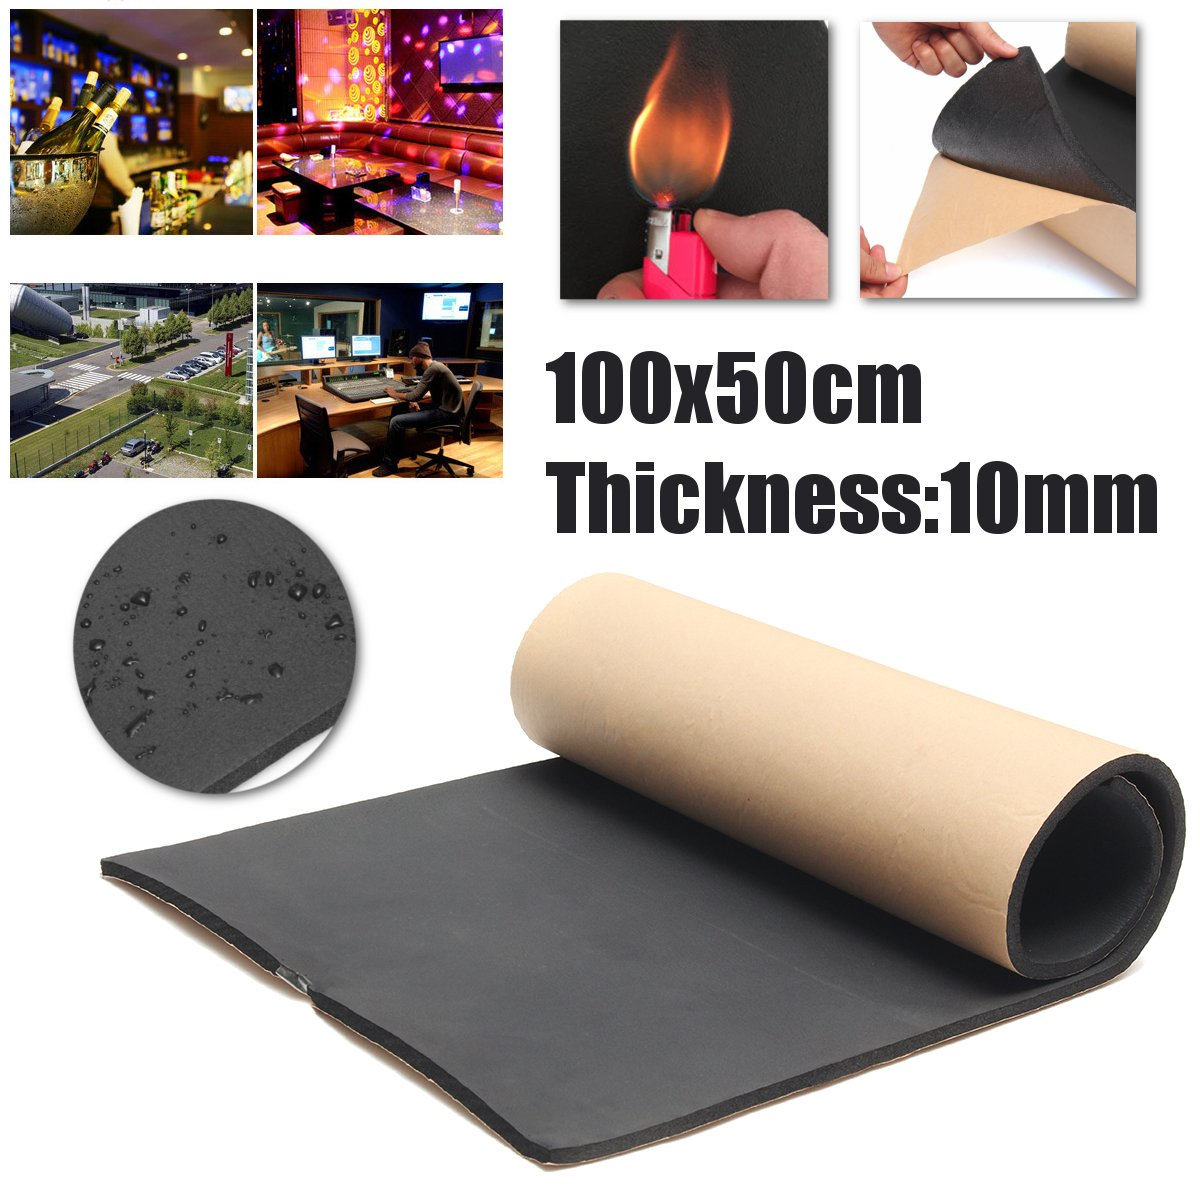 Jeteven 1m x 50cm High Density Foam Rubber Padding Roll Self Closed Cell Foam Waterproof Soundproof Insulation Thermal Foam Car Sound Deadening Mat 1m by Jeteven (Image #7)